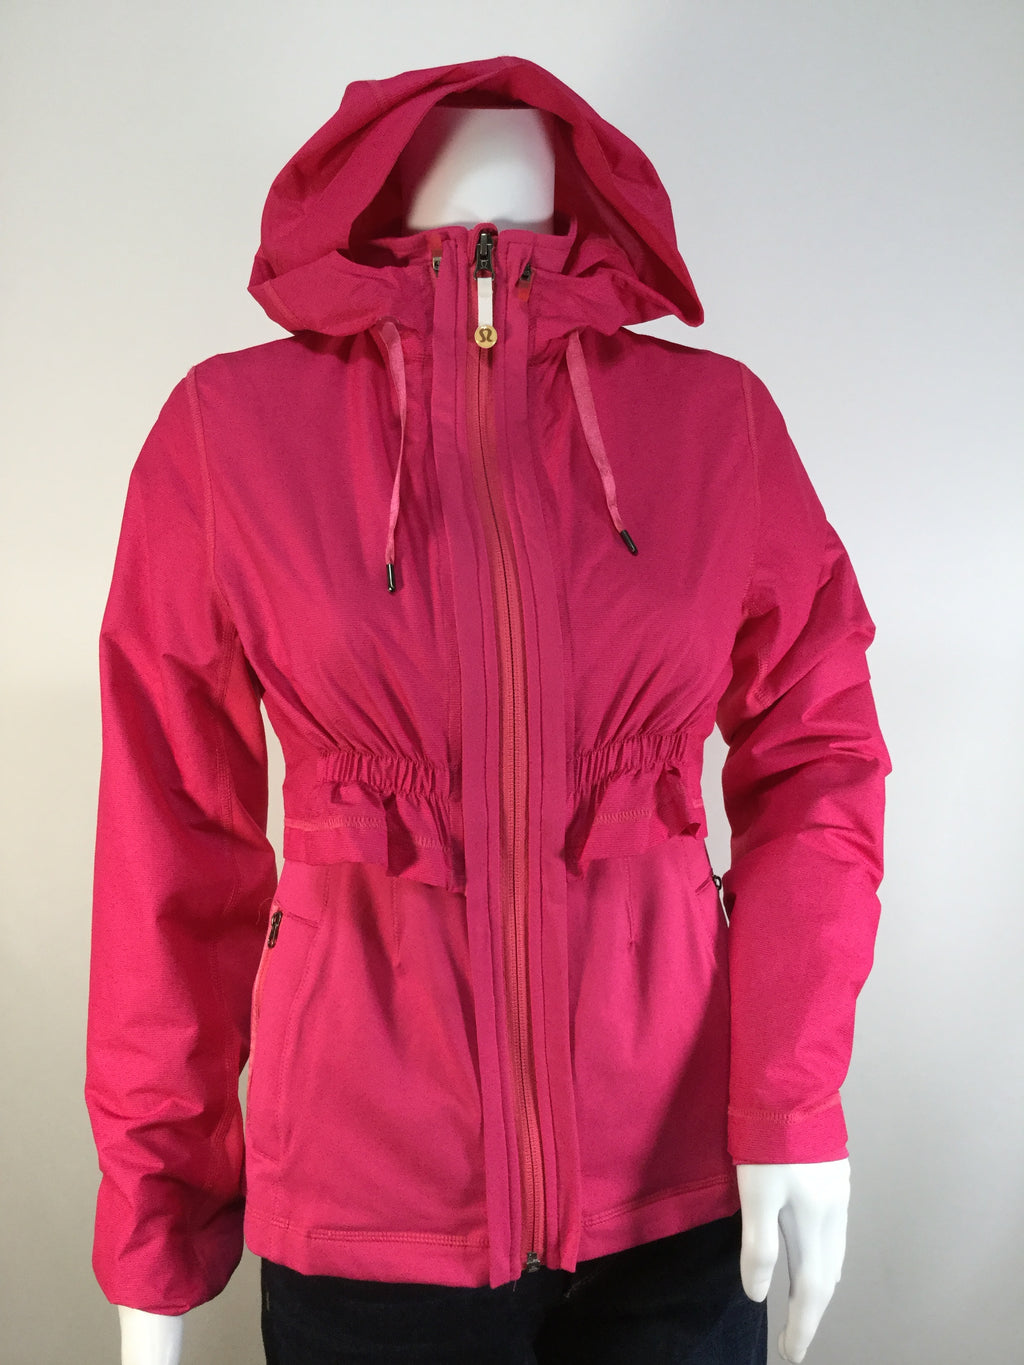 Lulu Lemon 2 in 1 Proactive 2 Piece Athletic Jacket w/ hoodie  Size:4